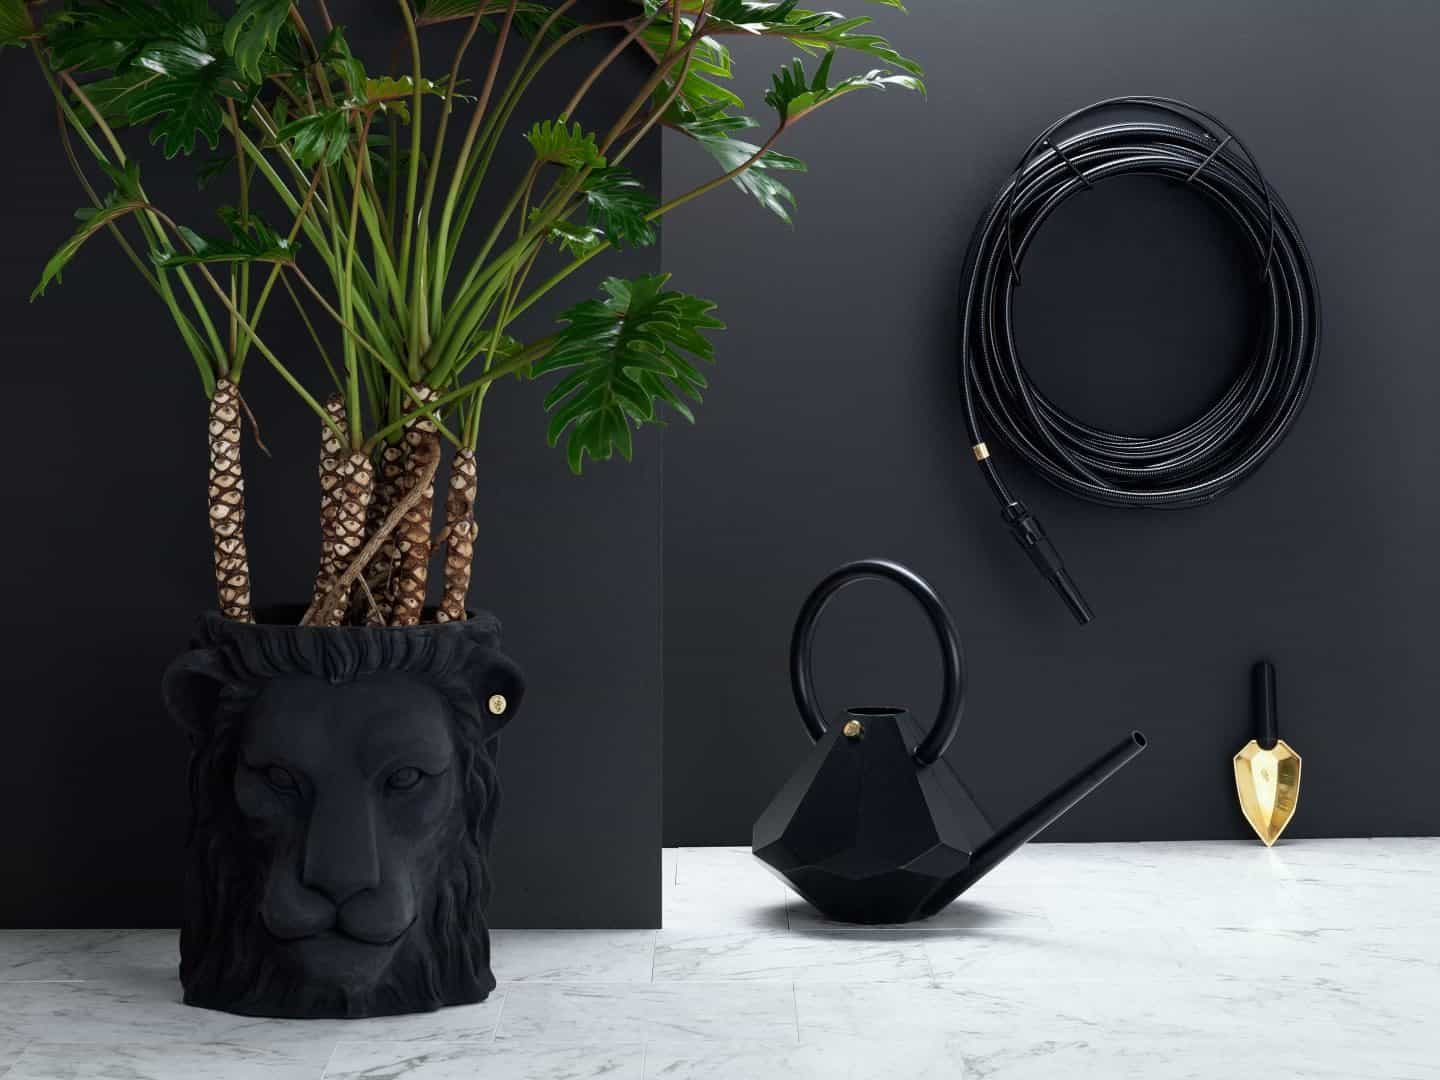 Garden Glory - Stylish garden equipment - black garden hose, watering can and lions head plant pot